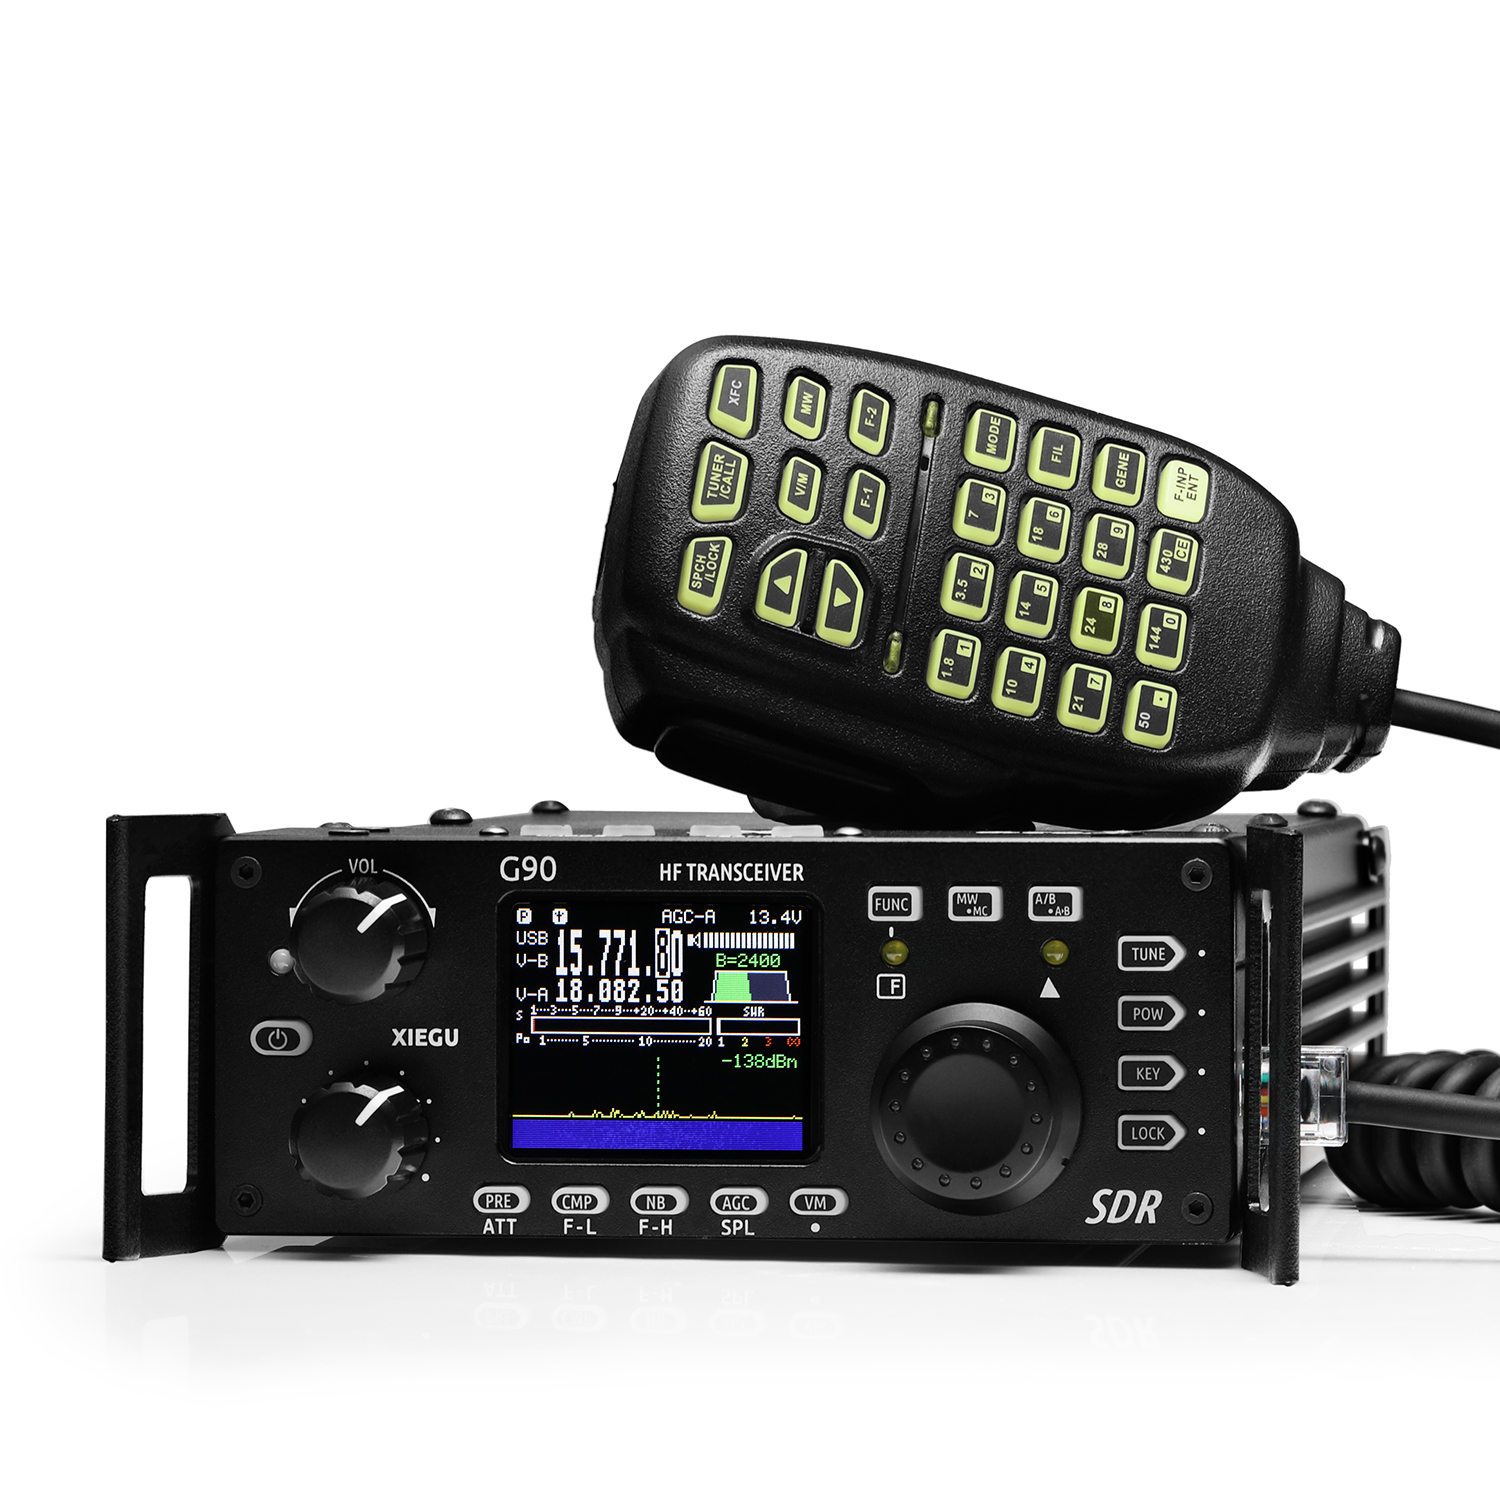 XIEGU G90 QRP HF Transceiver 20W SSB CW AM FM  Amateur Radio 0.5-30MHz SDR Structure With Built-in Auto Antenna Tuner GSOC